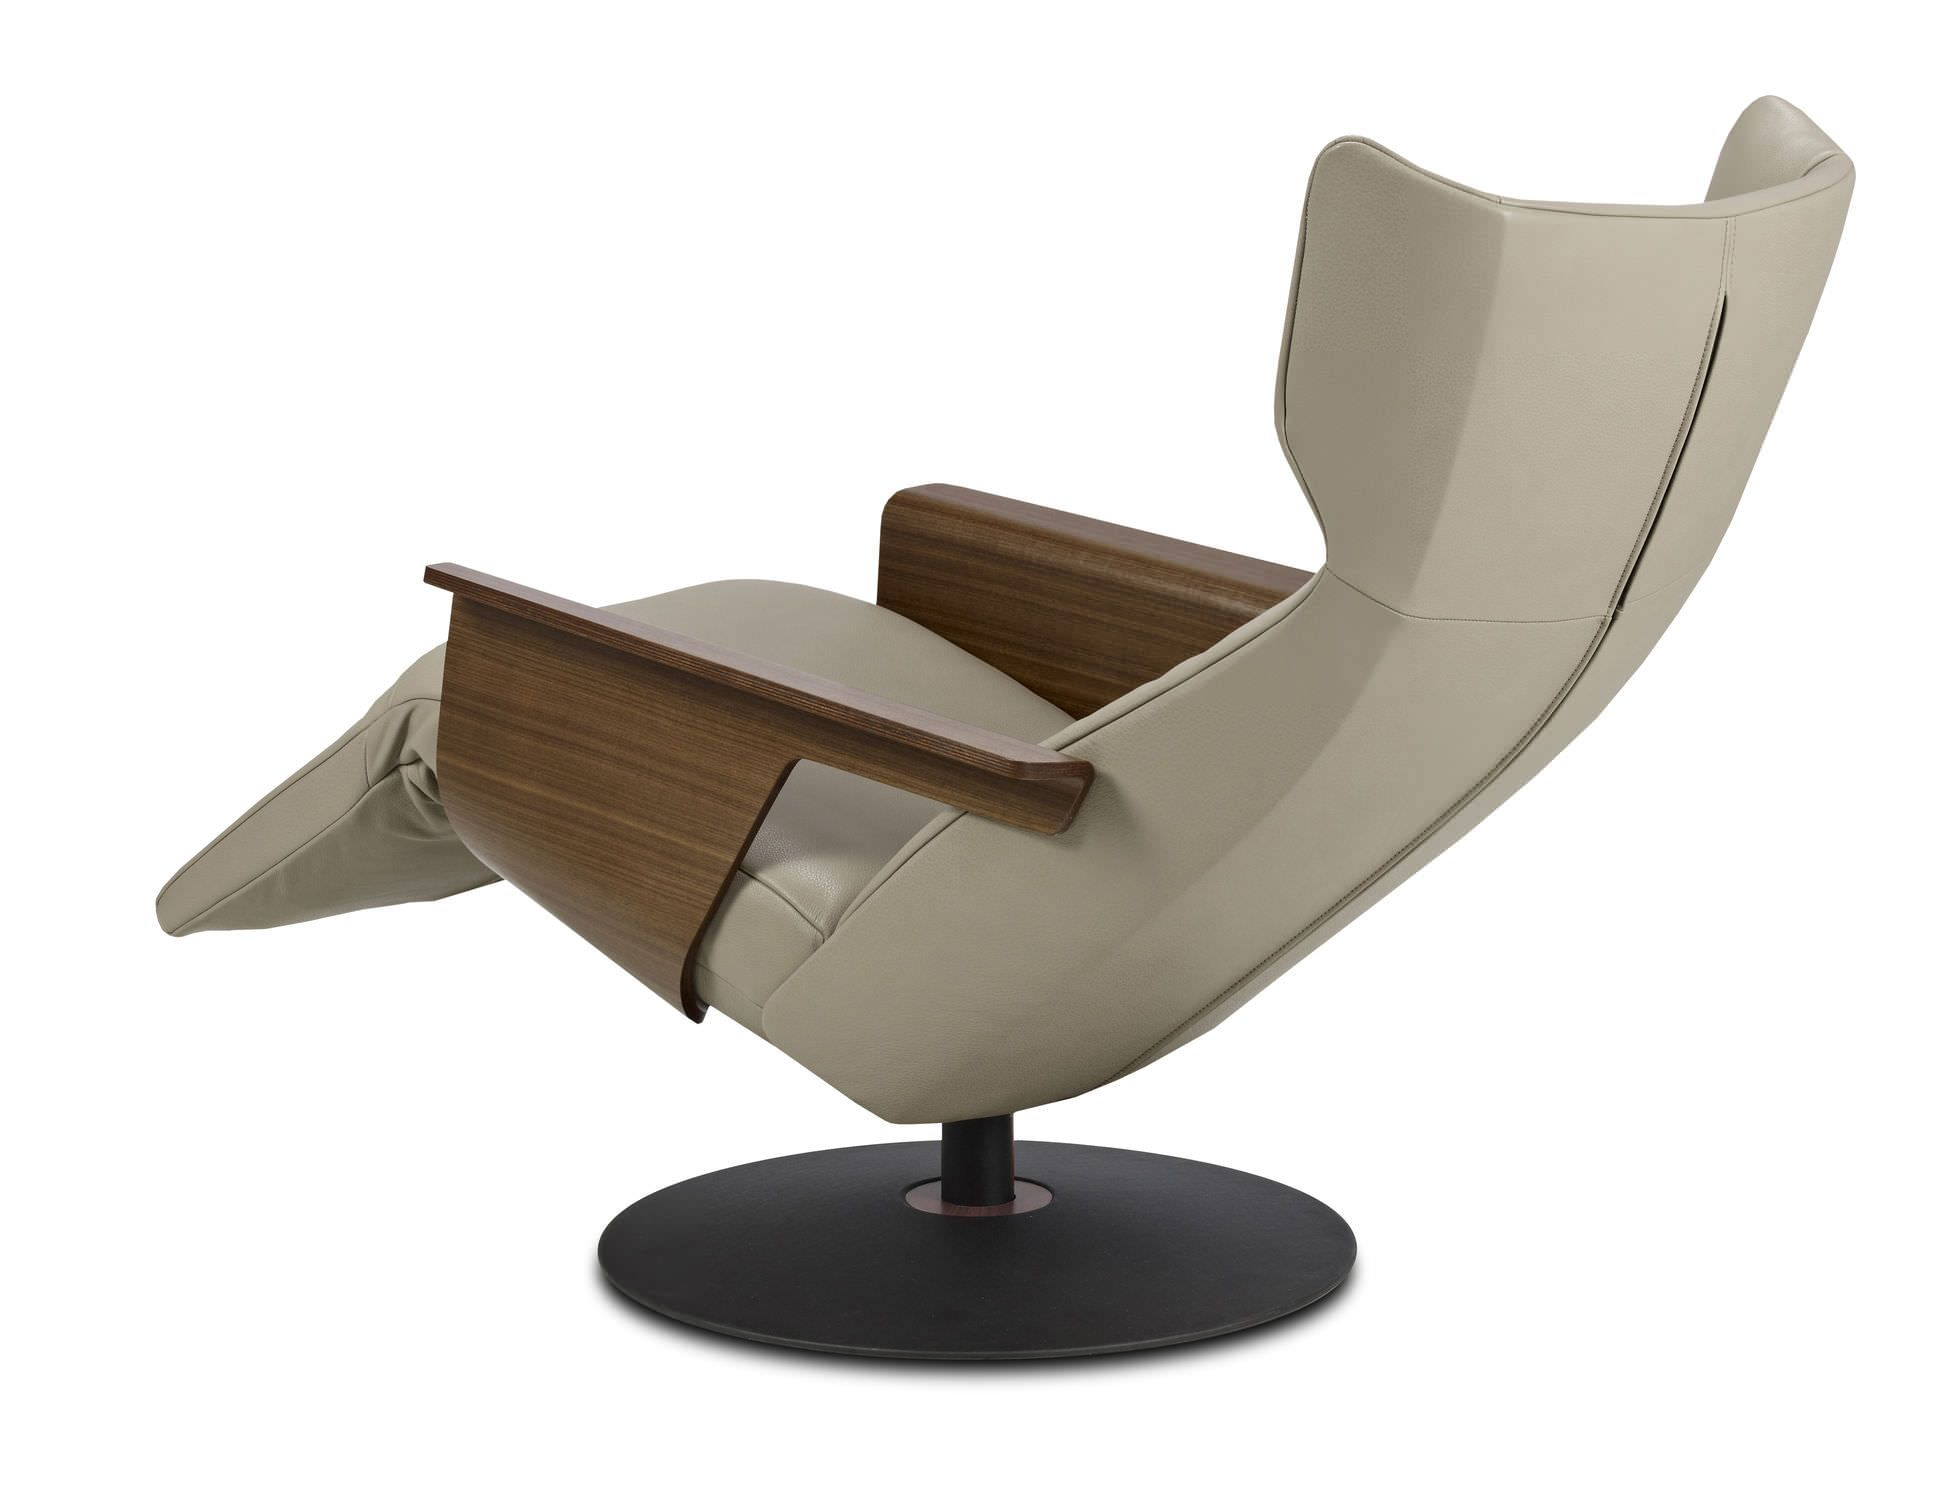 Contemporary leather recliner armchair with footstool OREA by